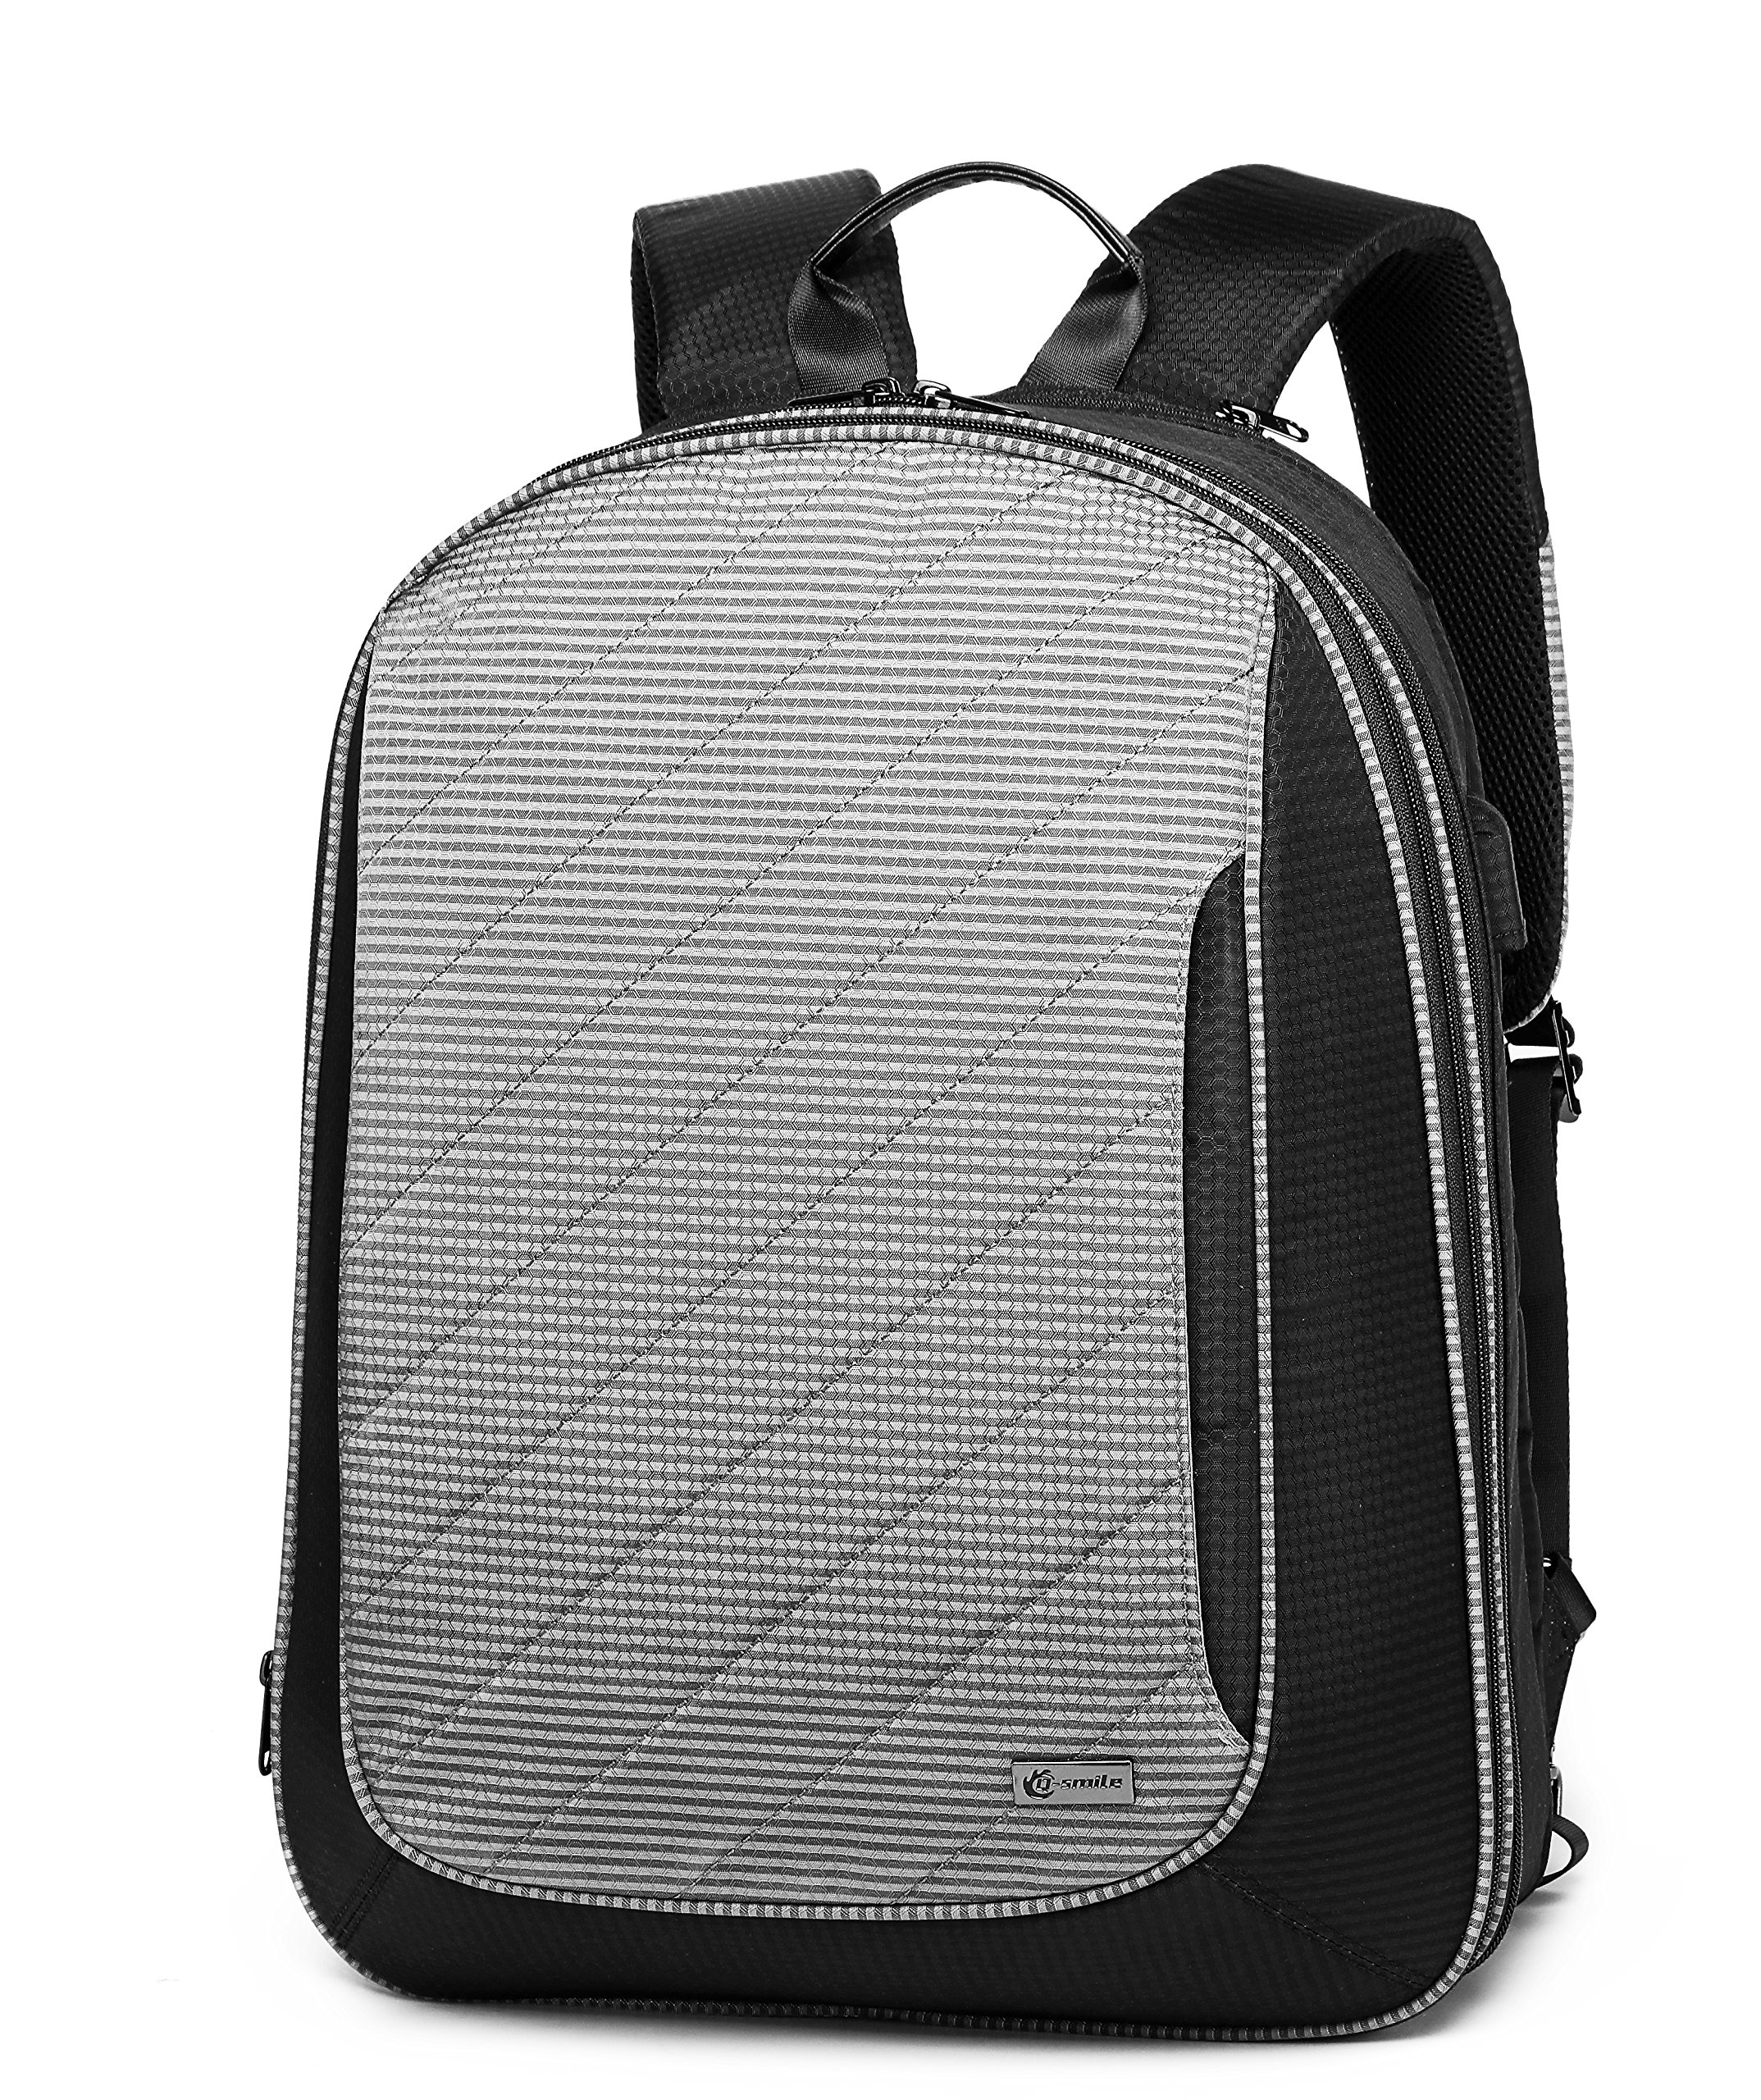 Q-smile Anti Theft Business Laptop Backpack Travel Computer Bag with Toiletry Organizer for Women & Men Fits 15.6 Inch Laptop and Notebook (Grey)